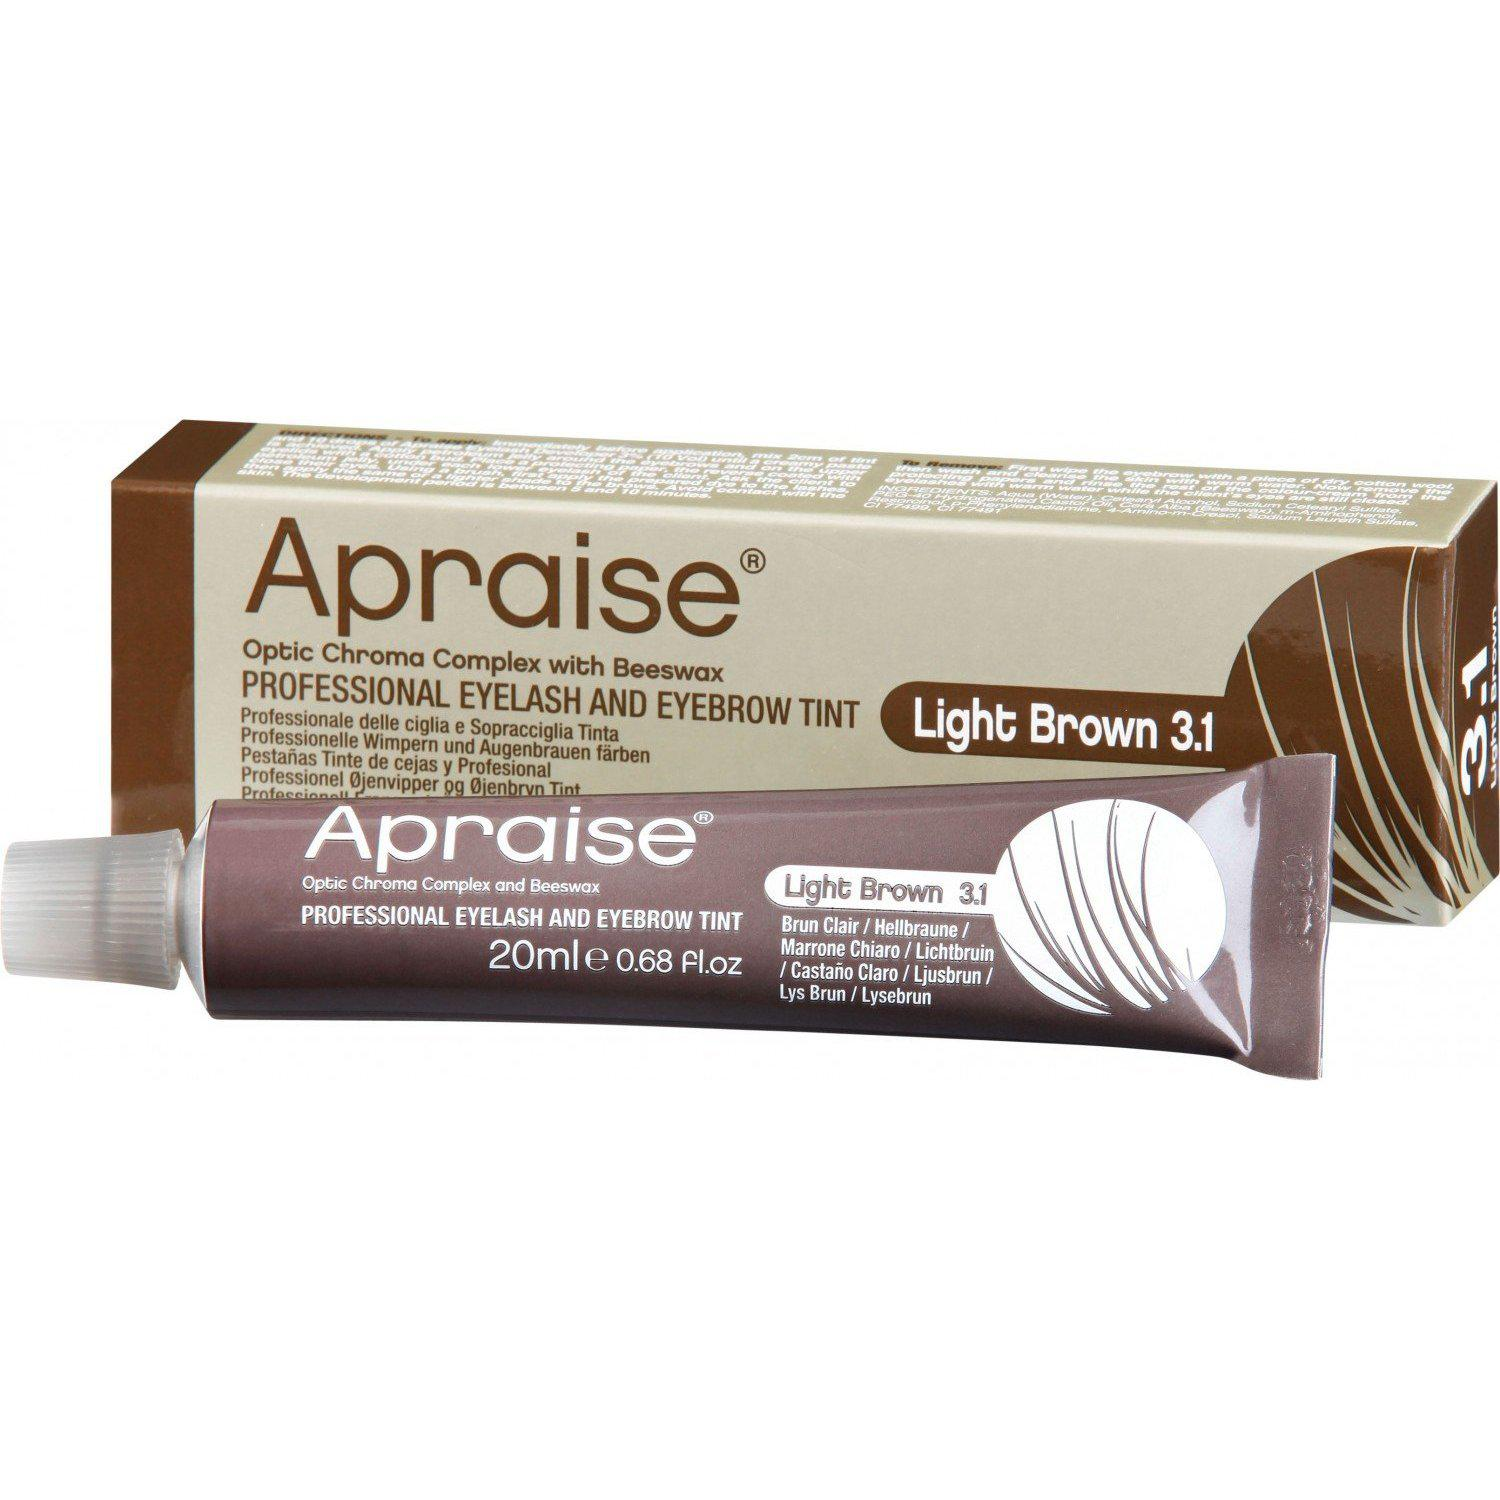 Apraise Light Brown Eyelash & Eyebrow Tint - No.3.1 20ml